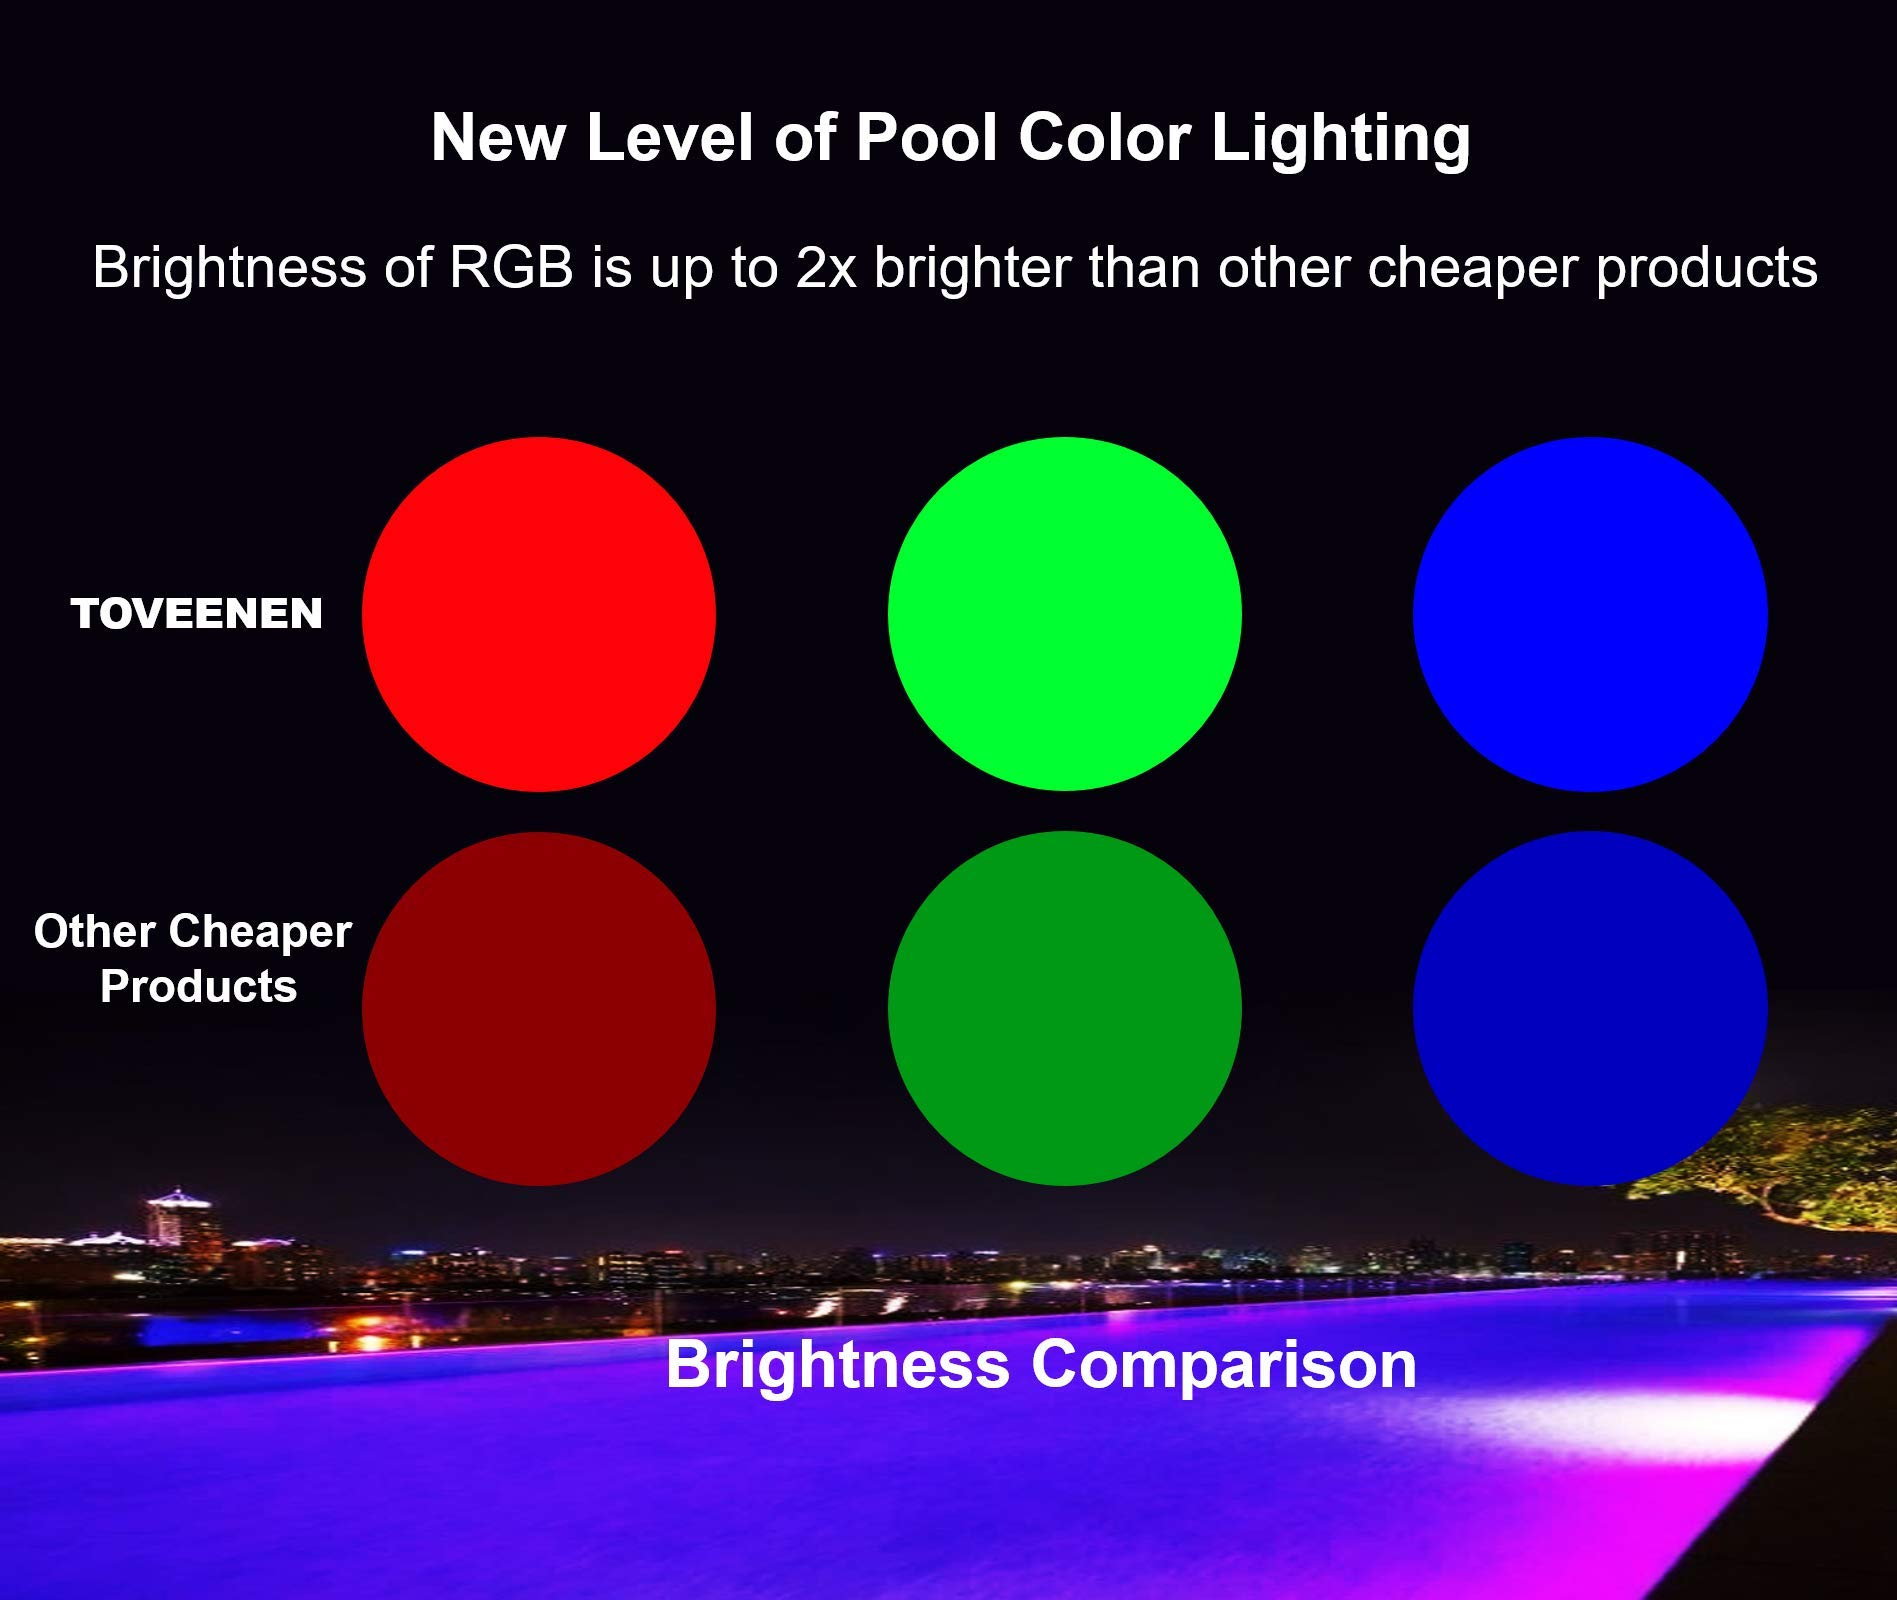 Color-changing LED Pool Light 120V 40W Replacement For Incandescent Bulbs in Pool Light, 16 light shows, Color Memory Remote Control (120VAC, 40Watt) by TOVEENEN (Image #2)